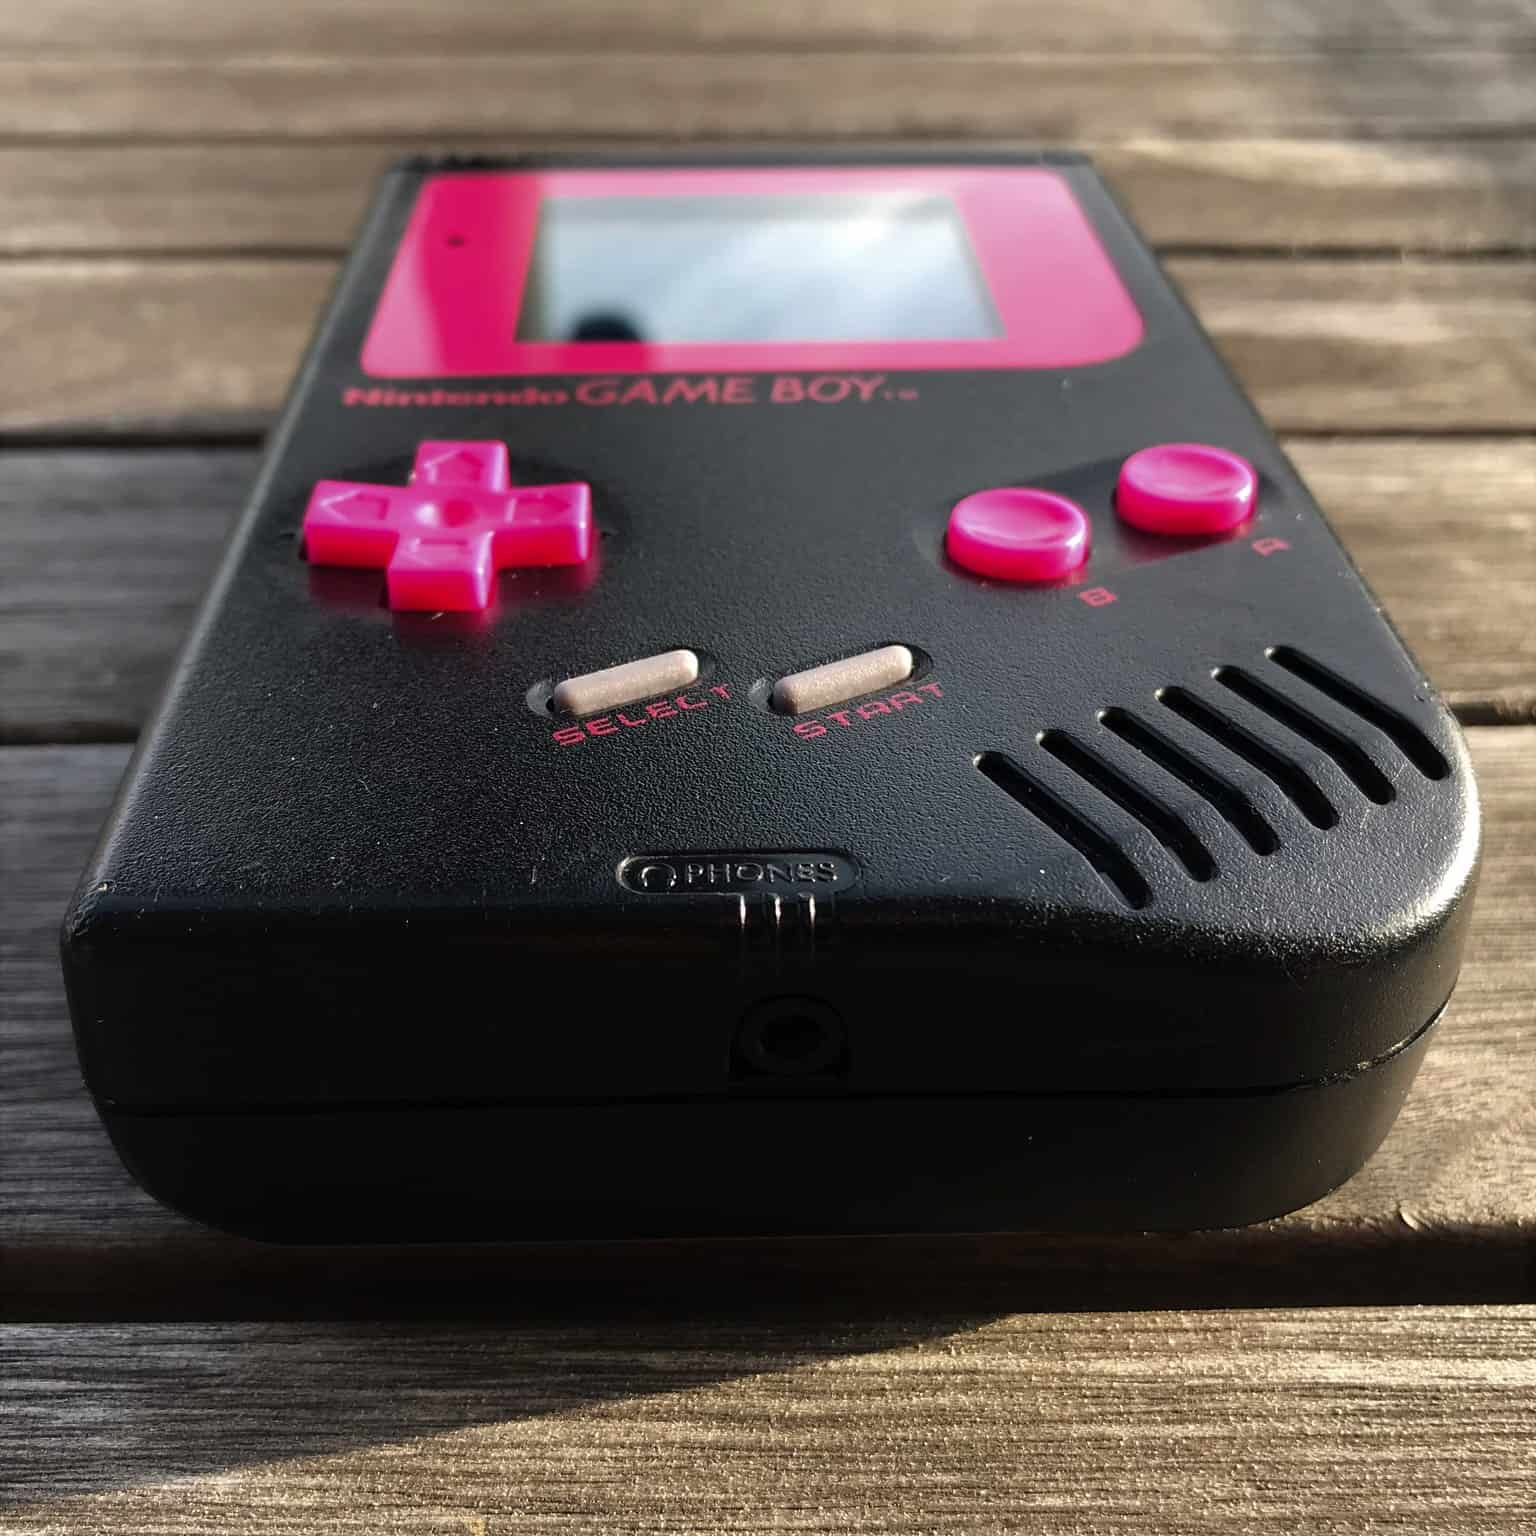 Black Gameboy DMG-01 modded for best video and sound